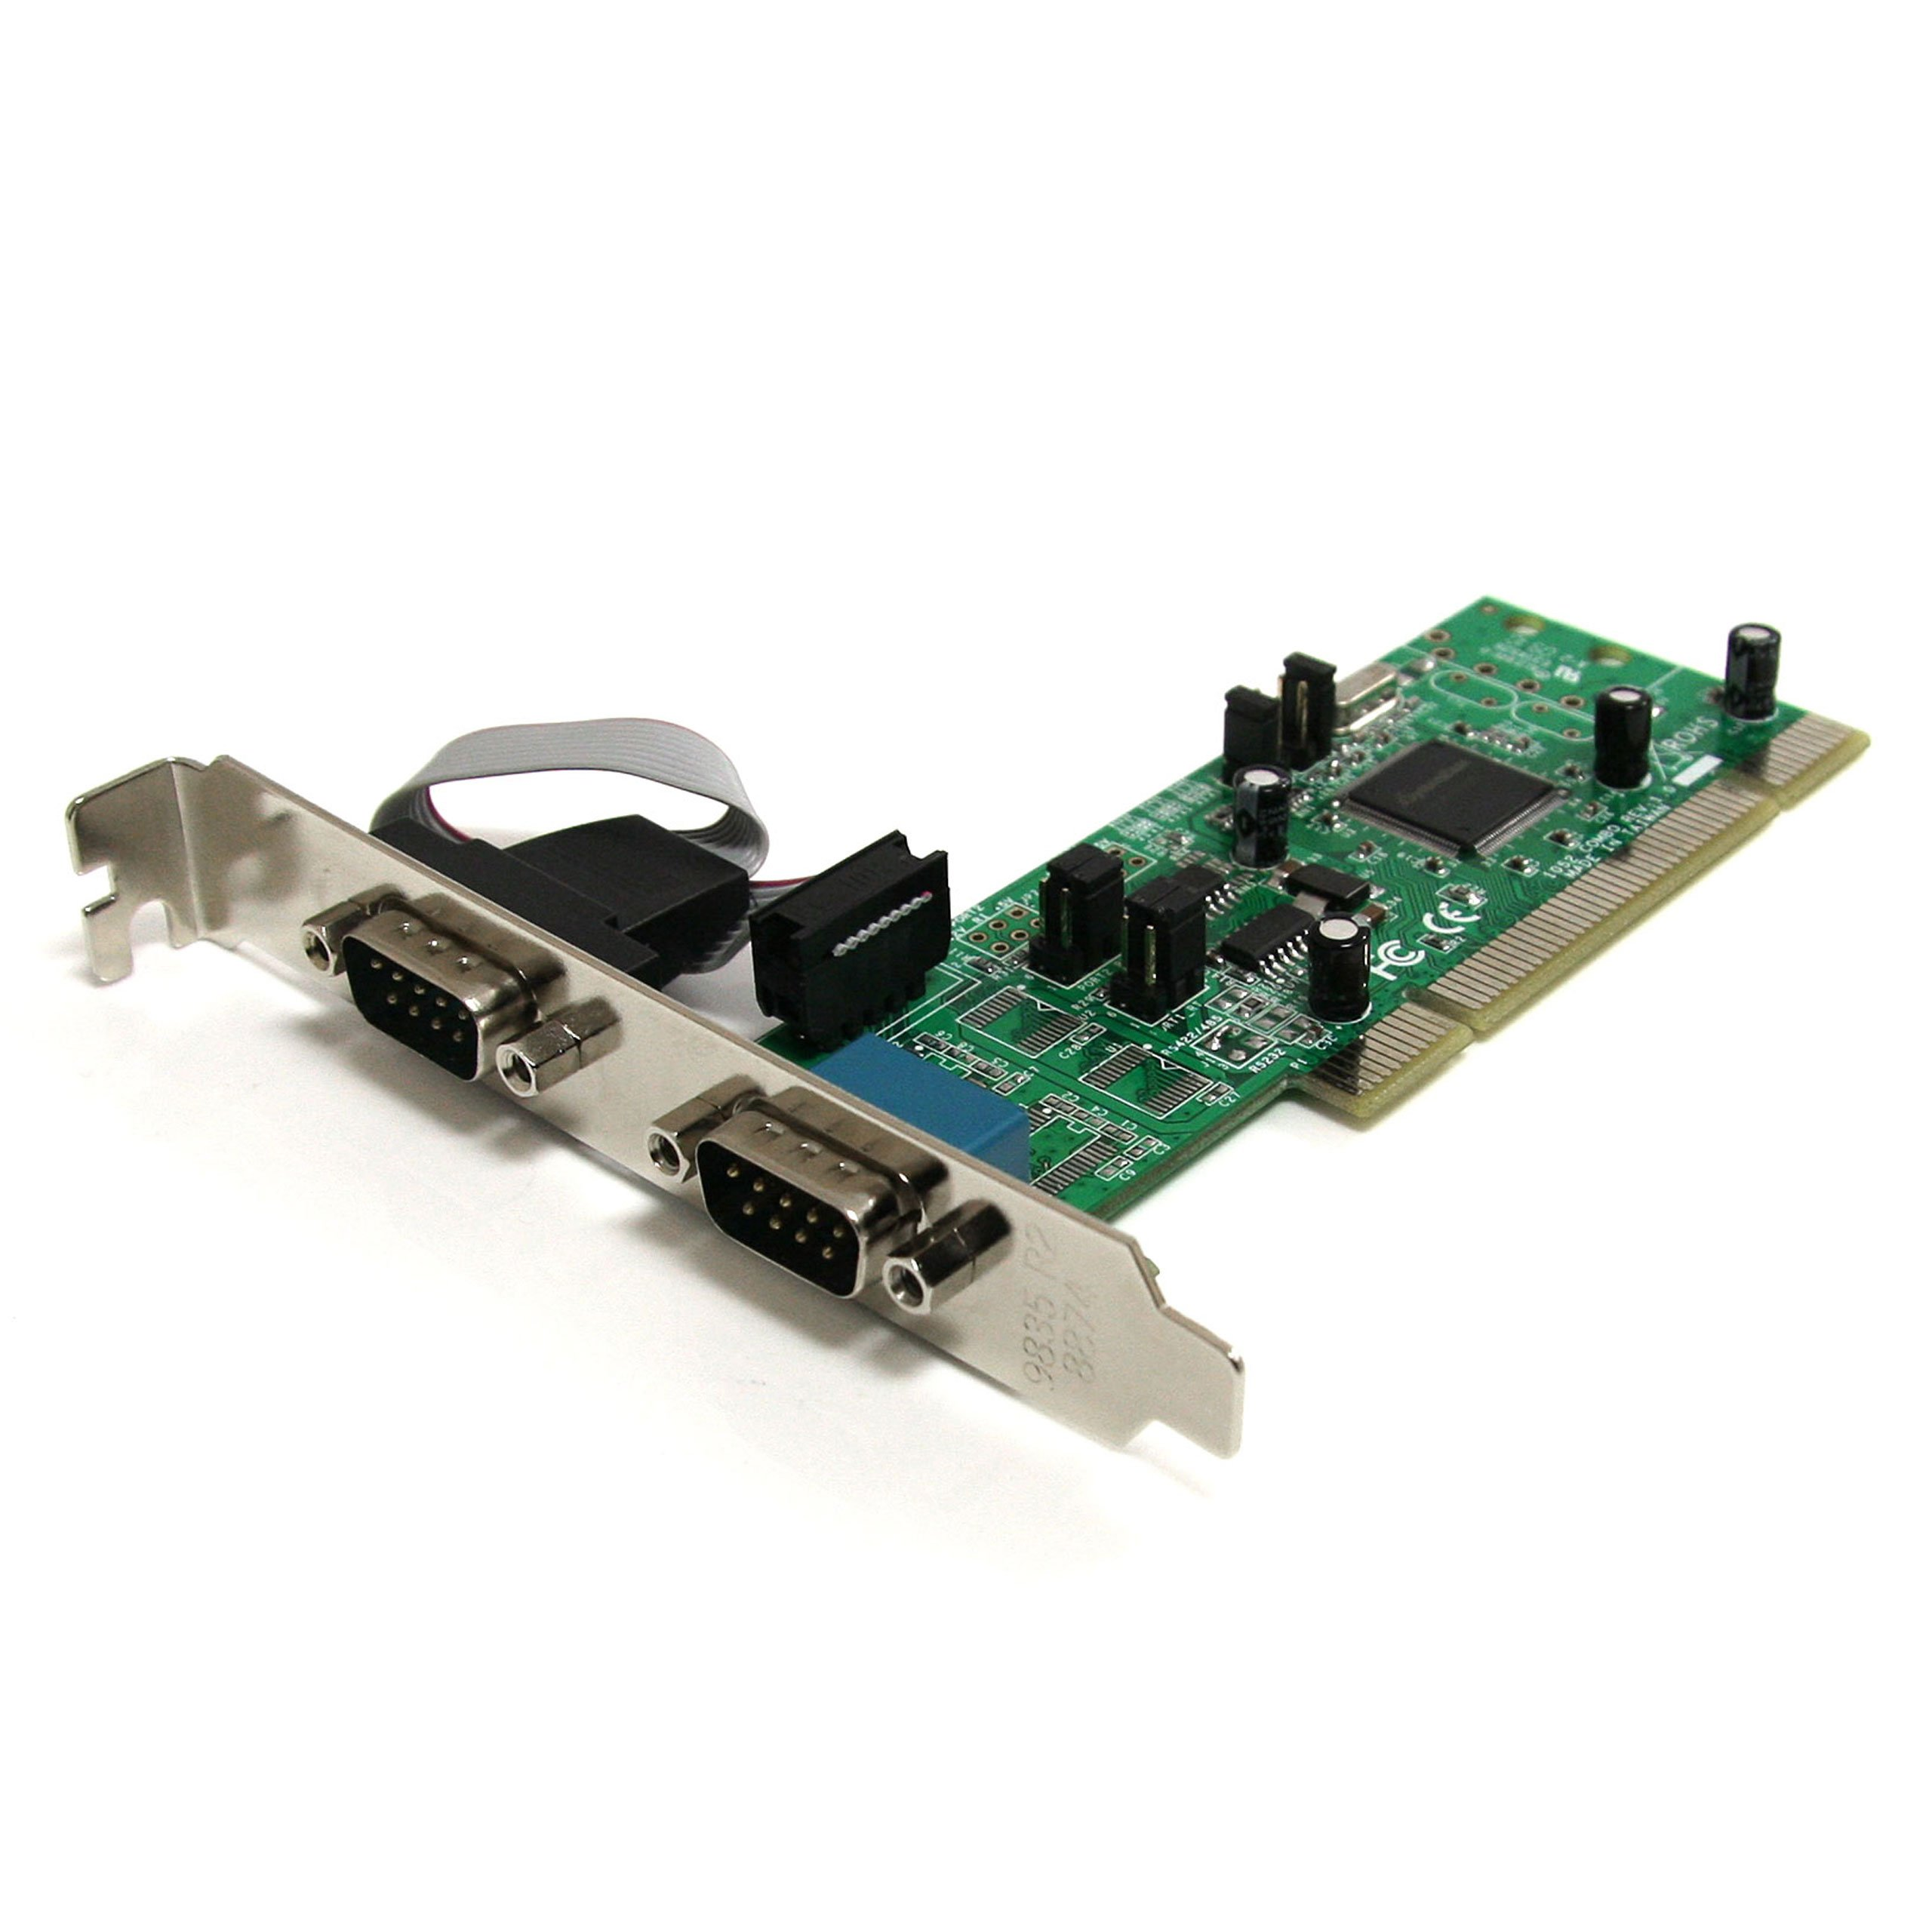 StarTech.com 2 Port PCI RS422/485 Serial Adapter Card with 161050 UART - Serial Adapter - PCI-X - RS-422/485 x 2 - PCI2S4851050 by StarTech